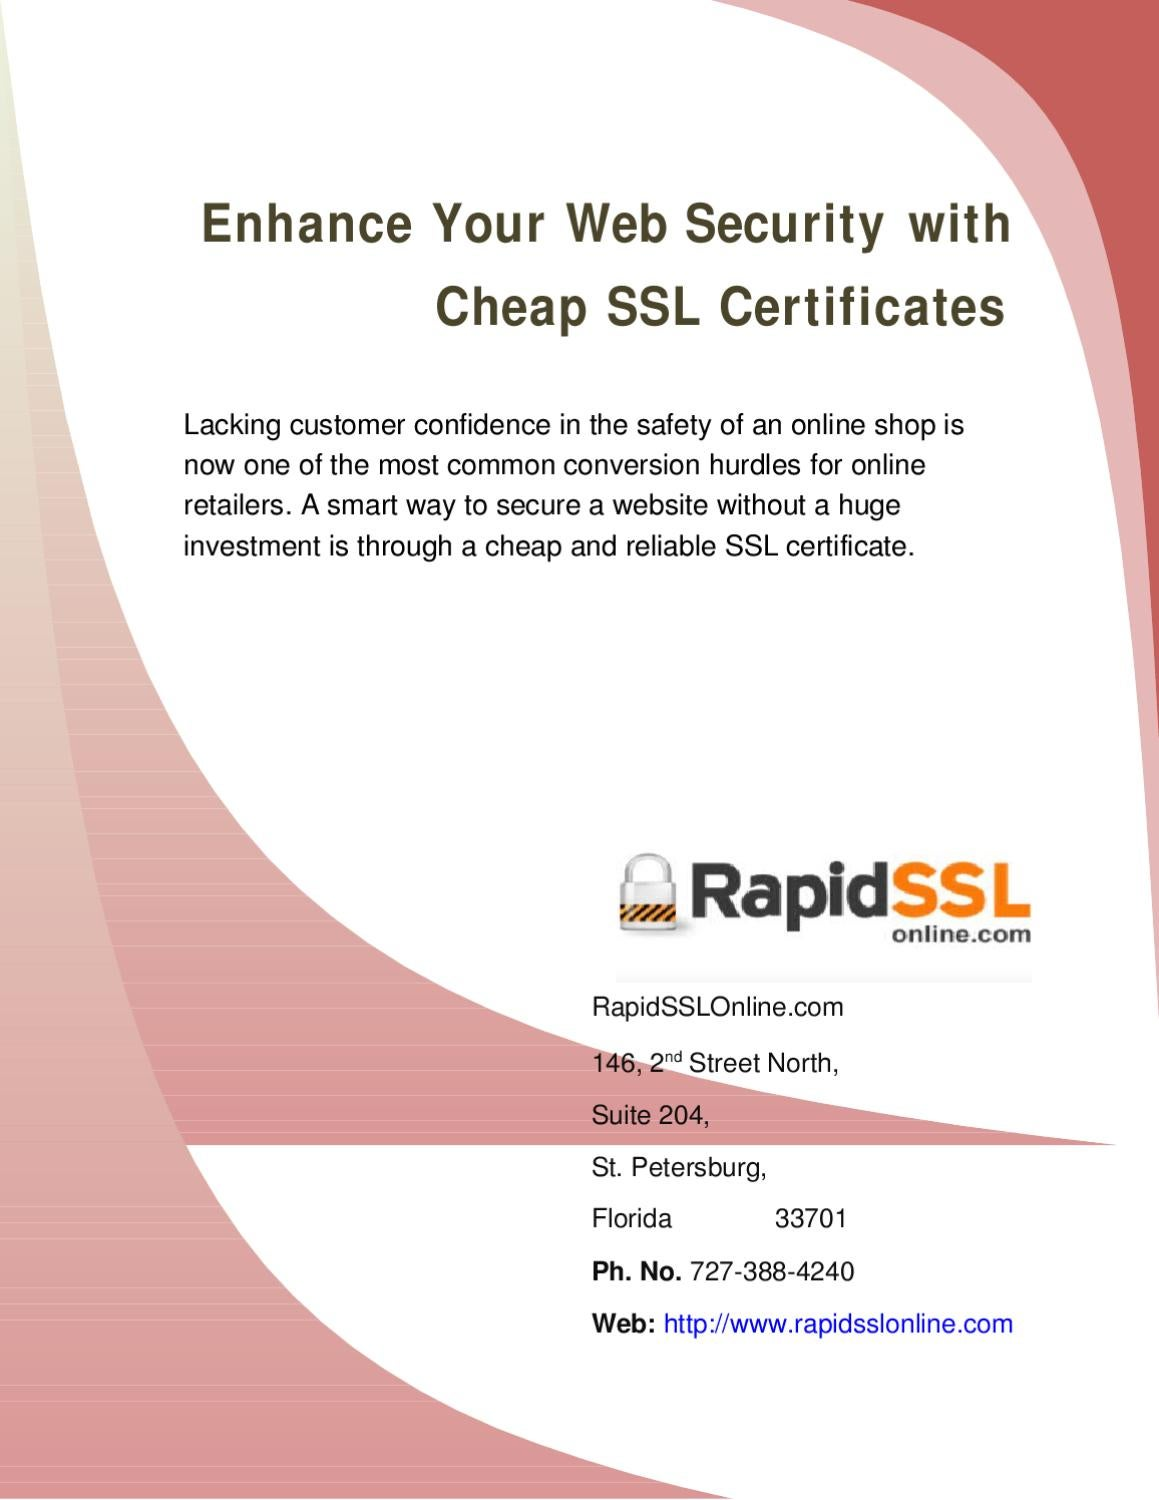 Enhance Your Website Security With Cheap Ssl Certificates By